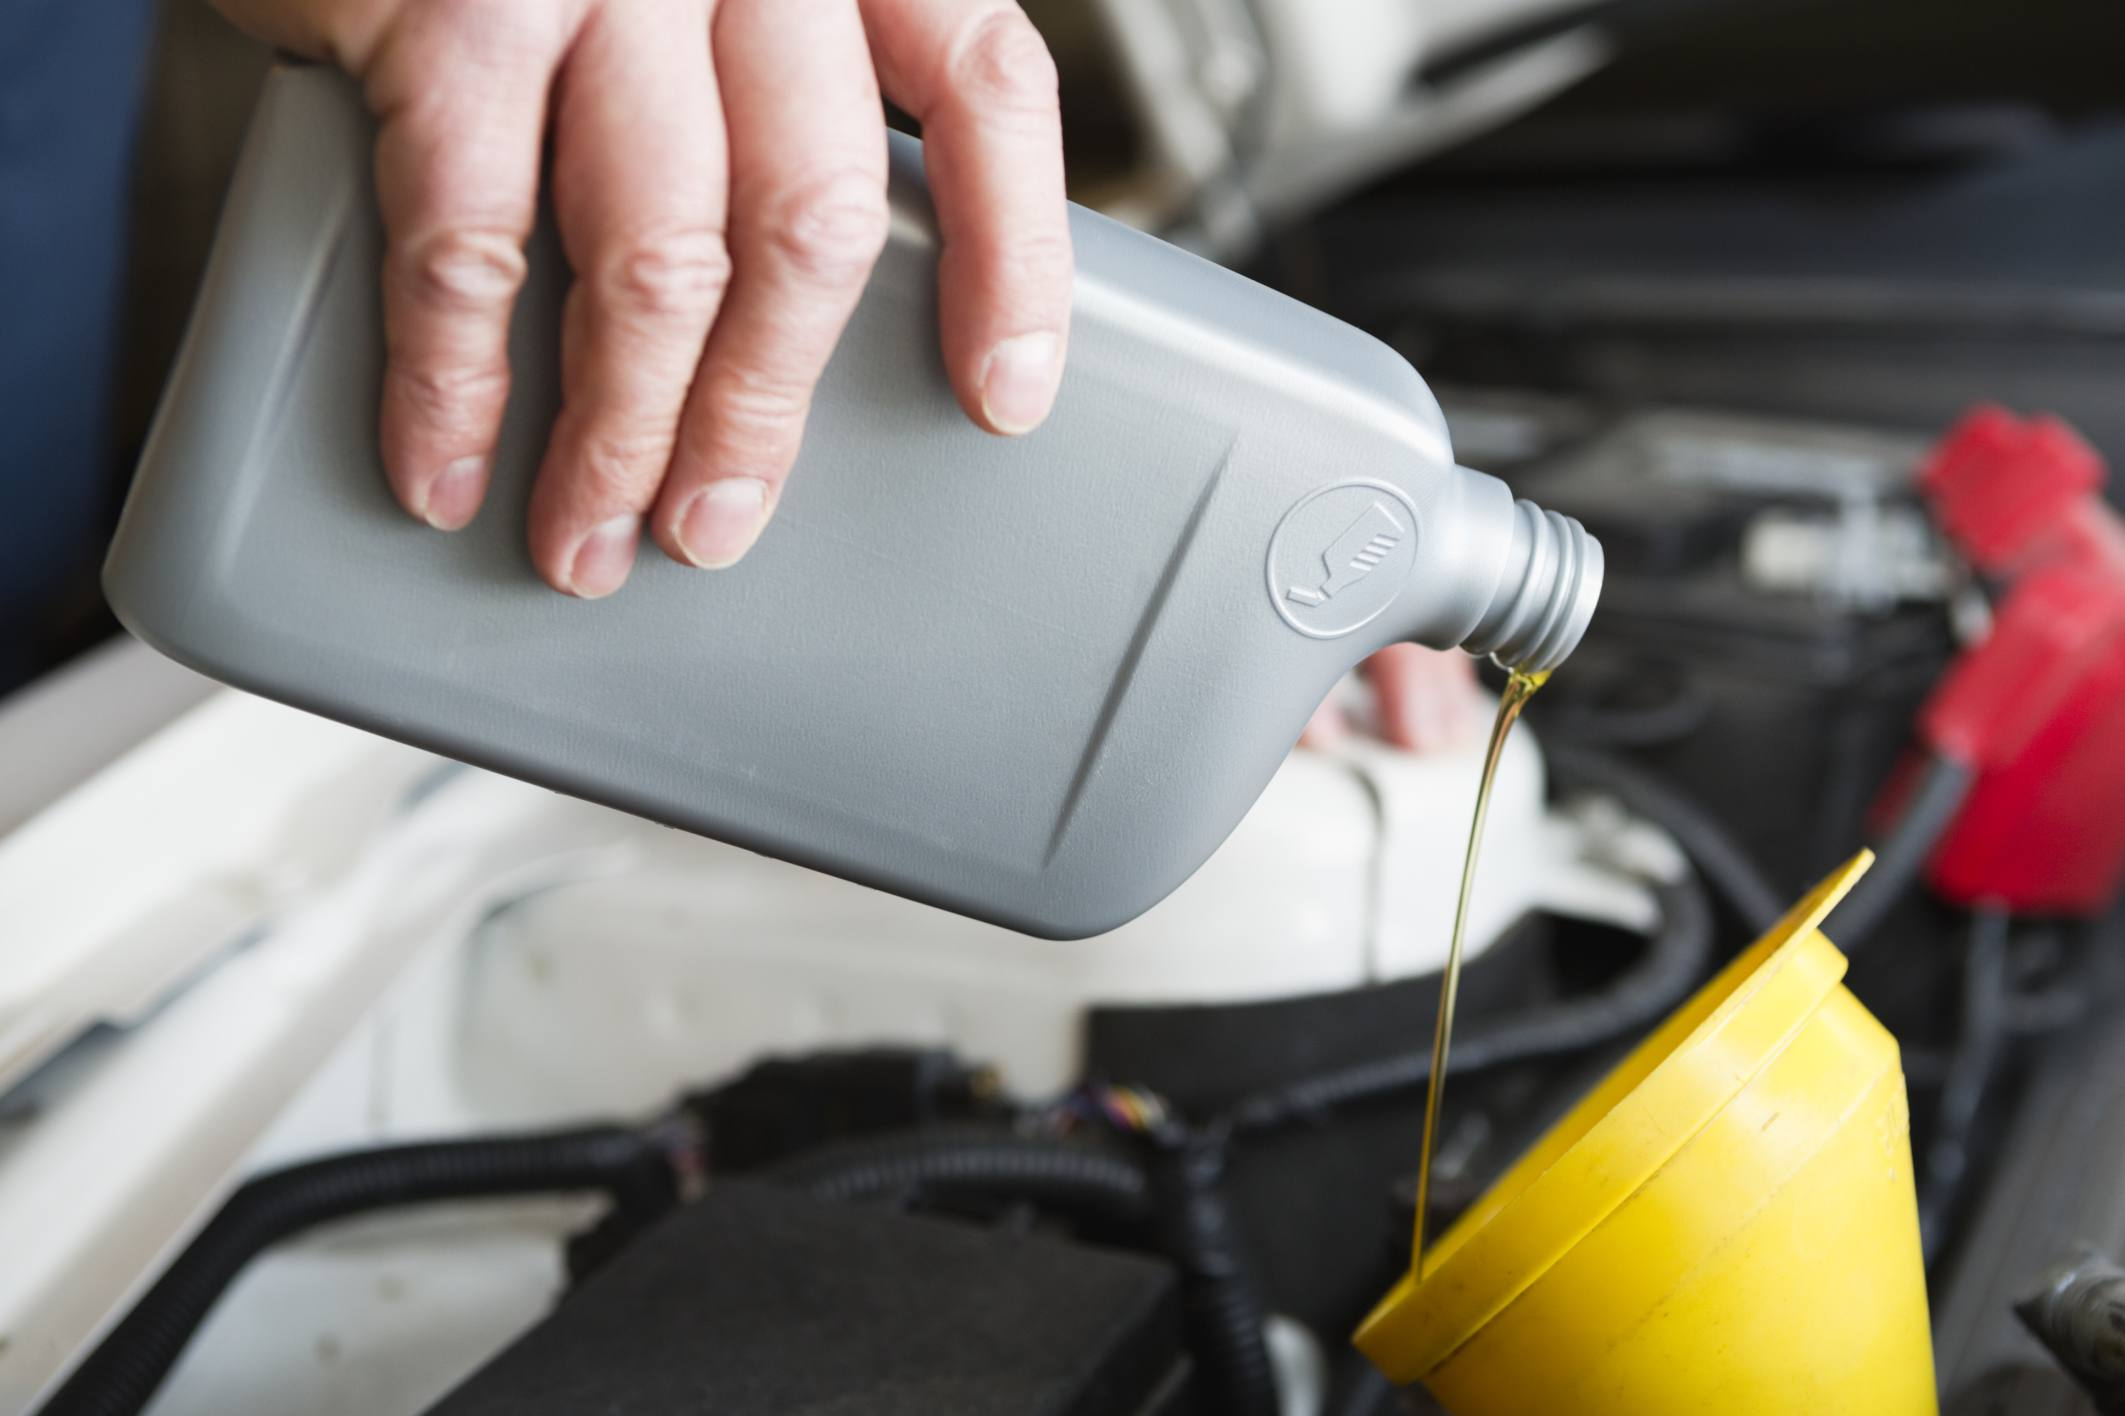 Eight Reasons Your Car Stinks, and How to Fix Bad Car Smells